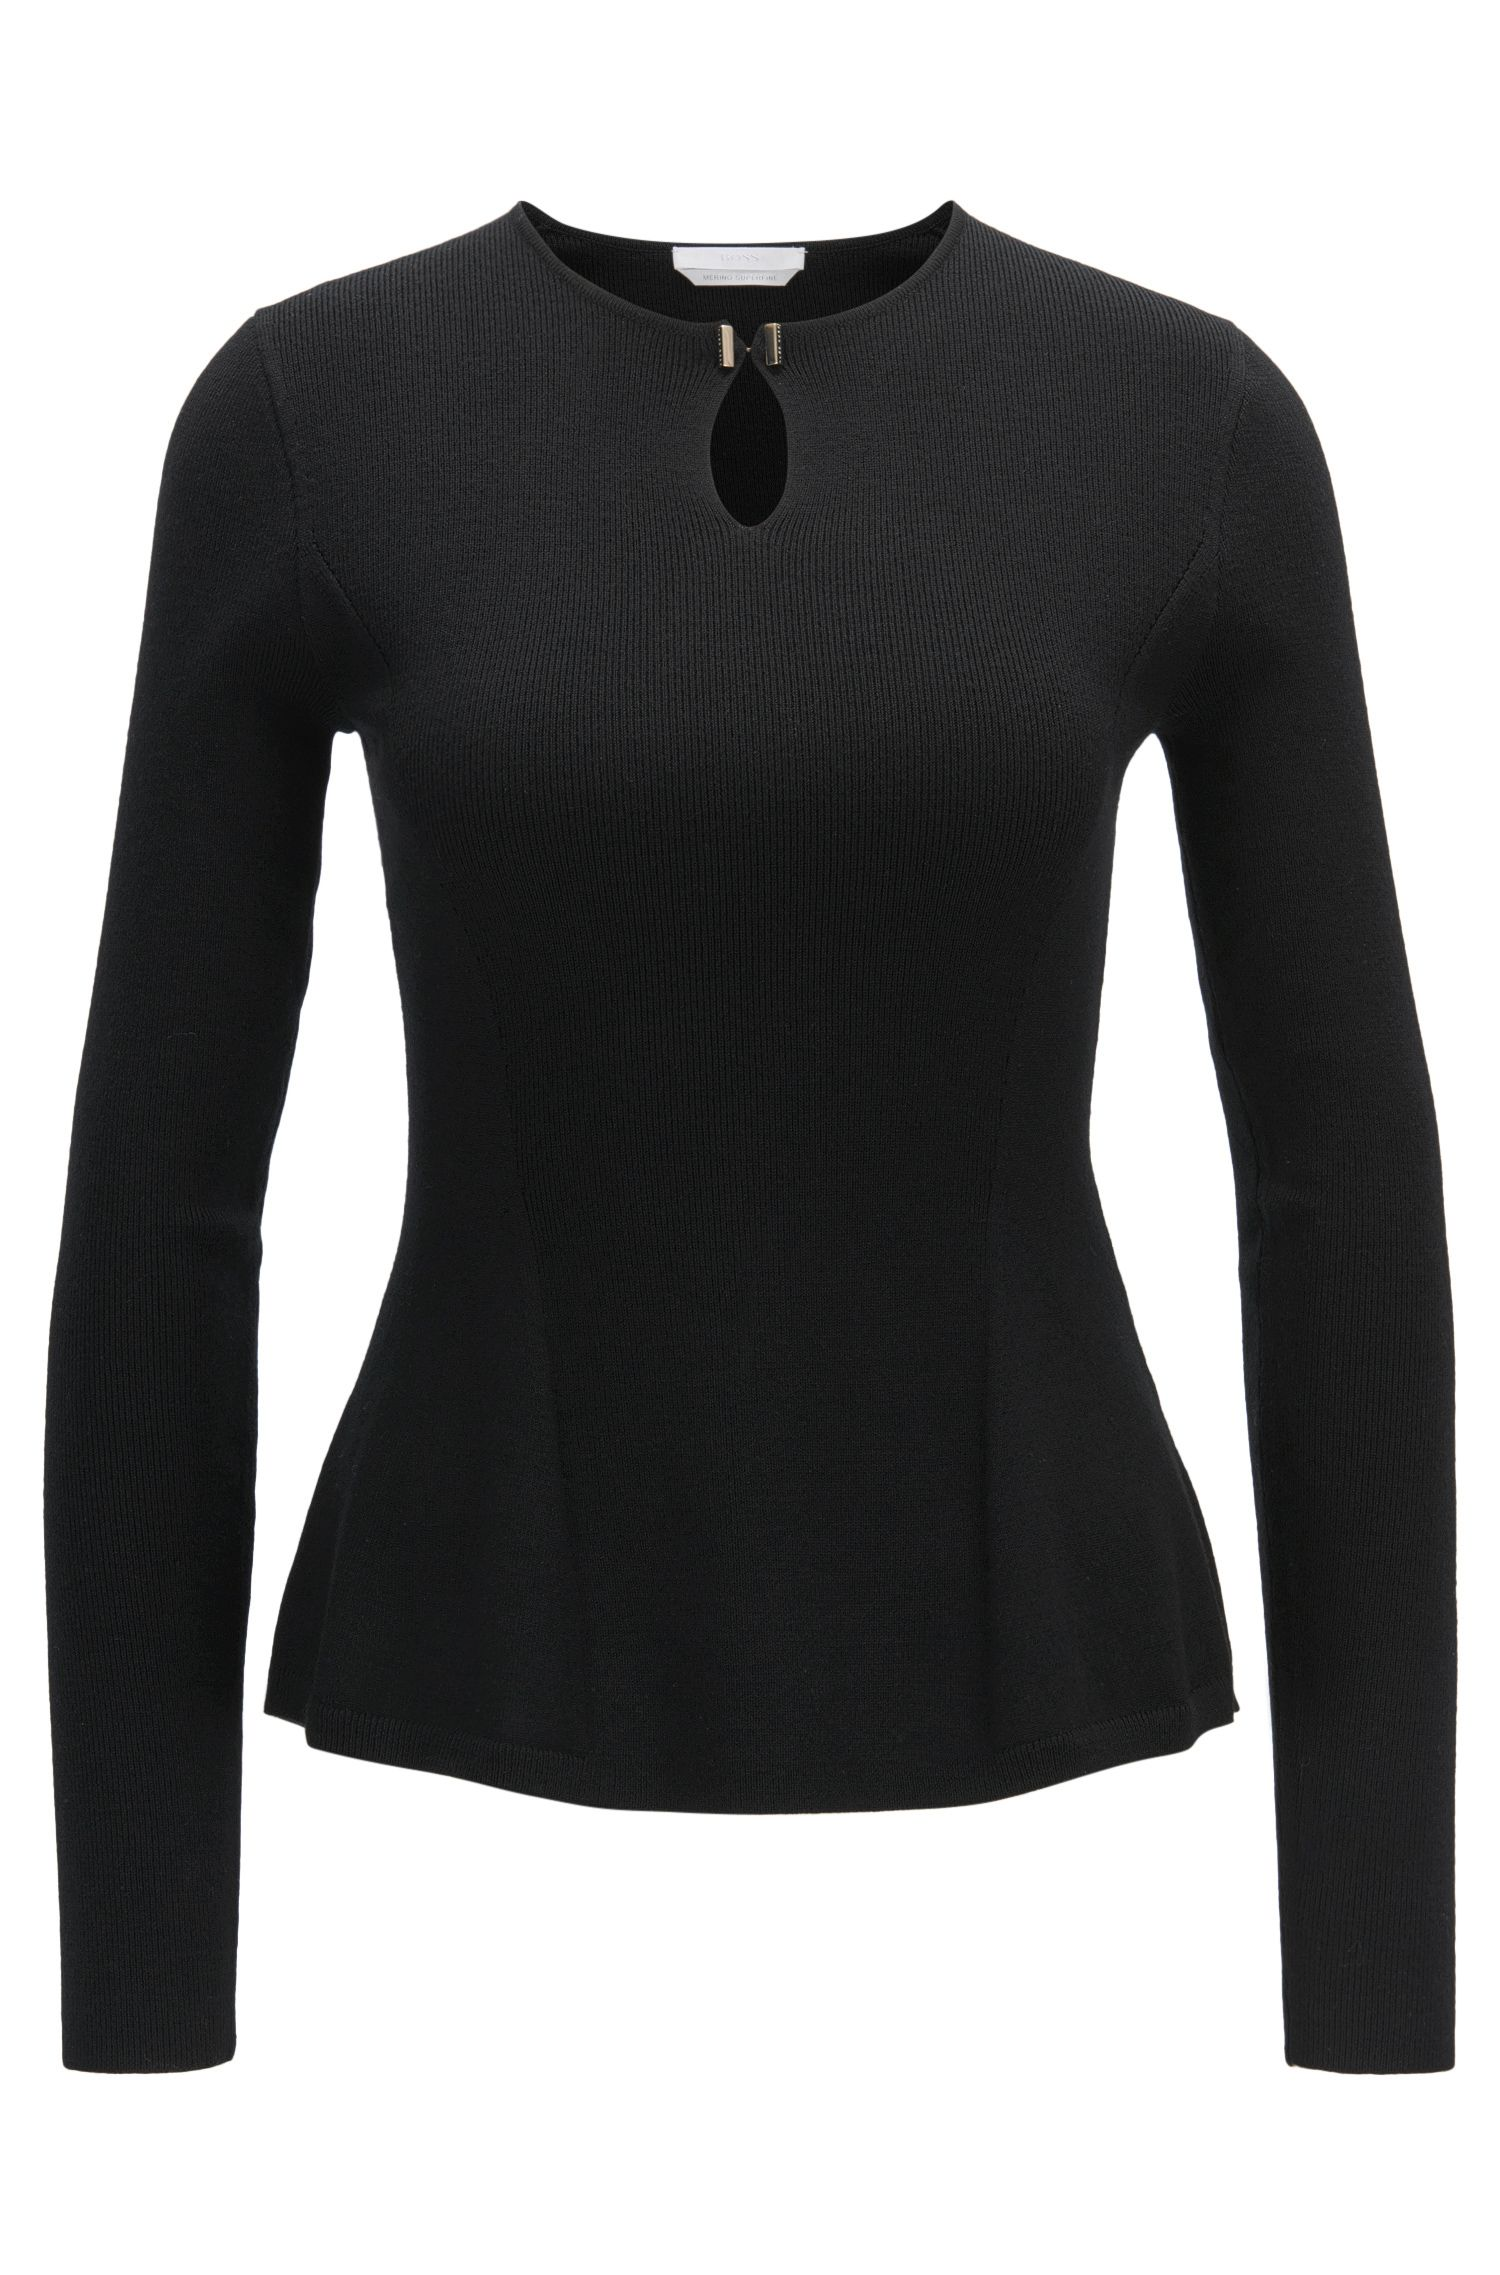 Peplum top in a mercerised virgin wool blend